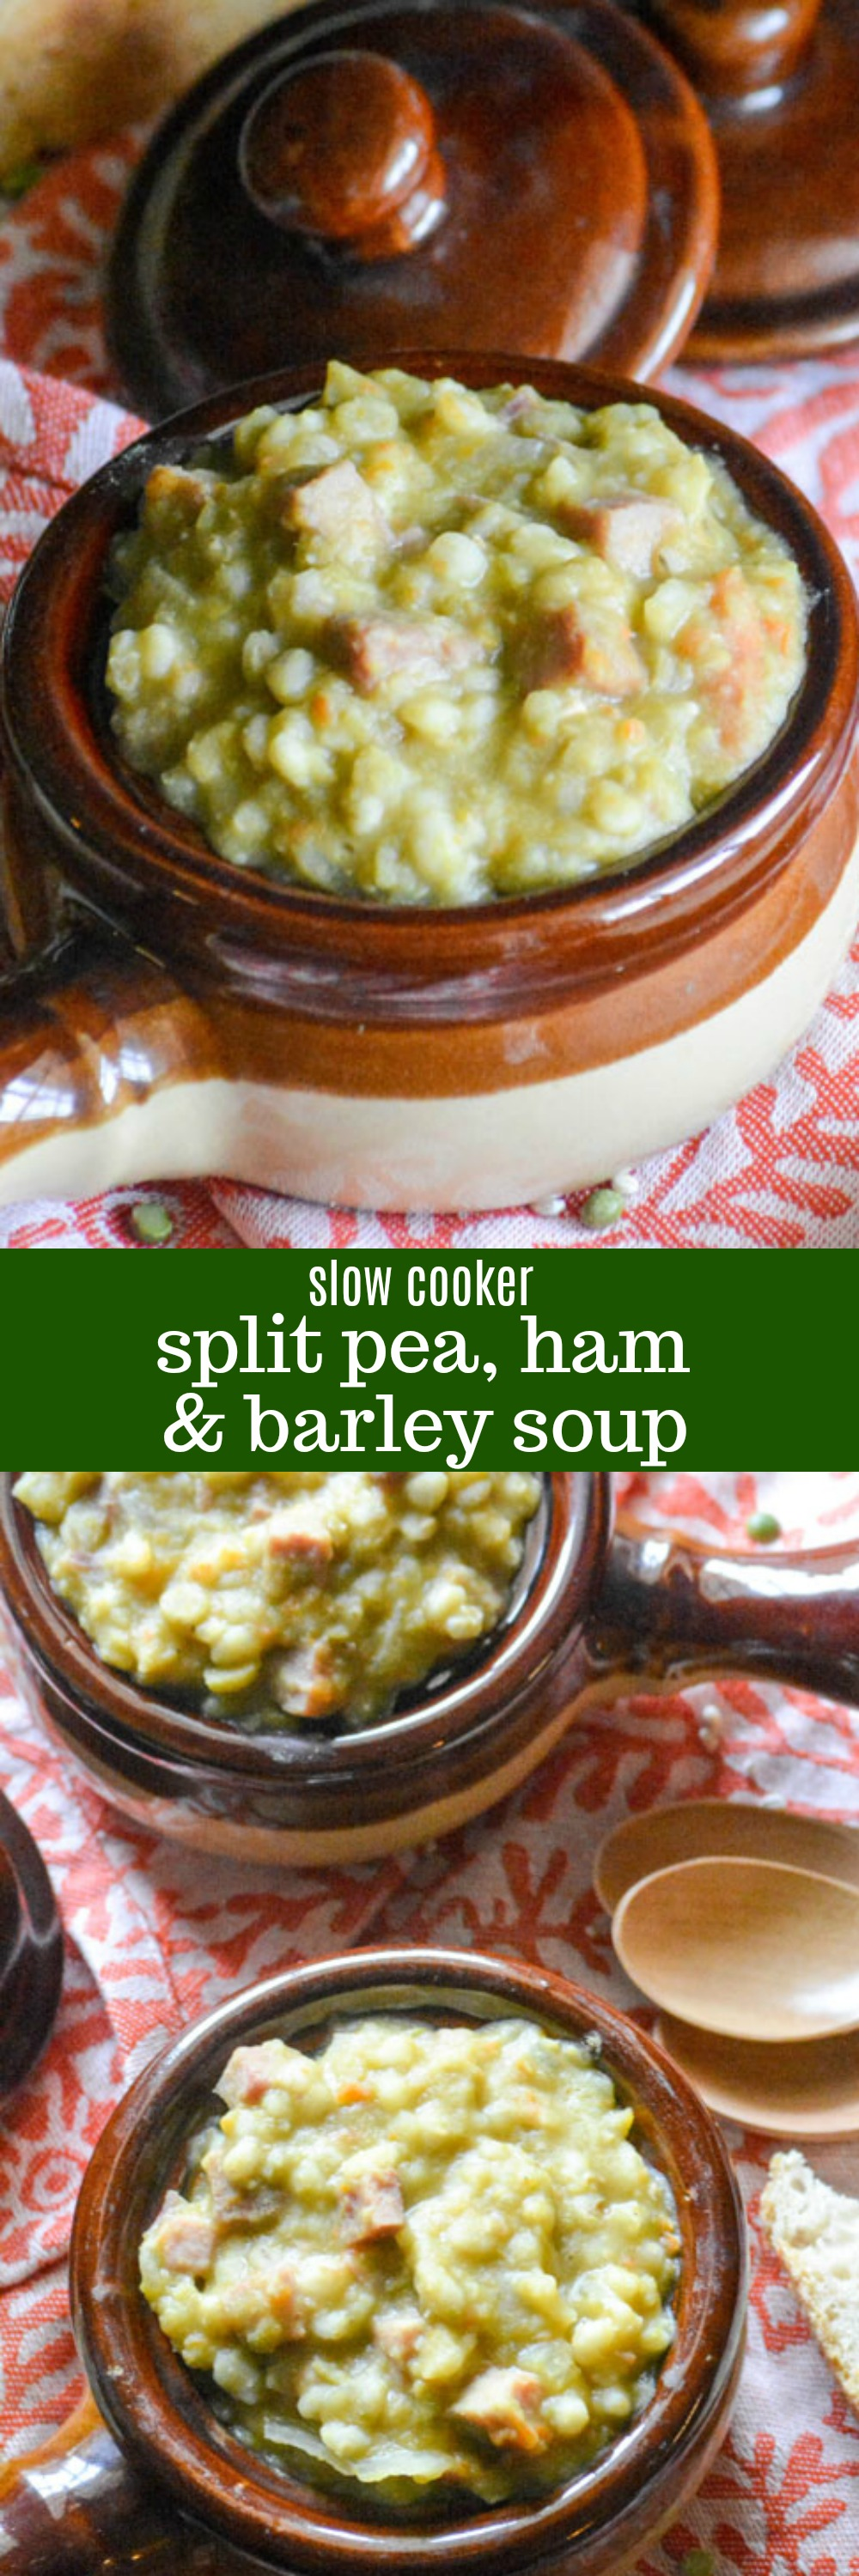 When the weather's cold, rainy, or gloomy- this quick & easy Slow Cooker Split Pea Ham & Barley Soup is just what the Doctor ordered for dinner. Loaded with hidden veggies, this healthy soup makes a hearty meal the whole family will fall in love with- even the kids!